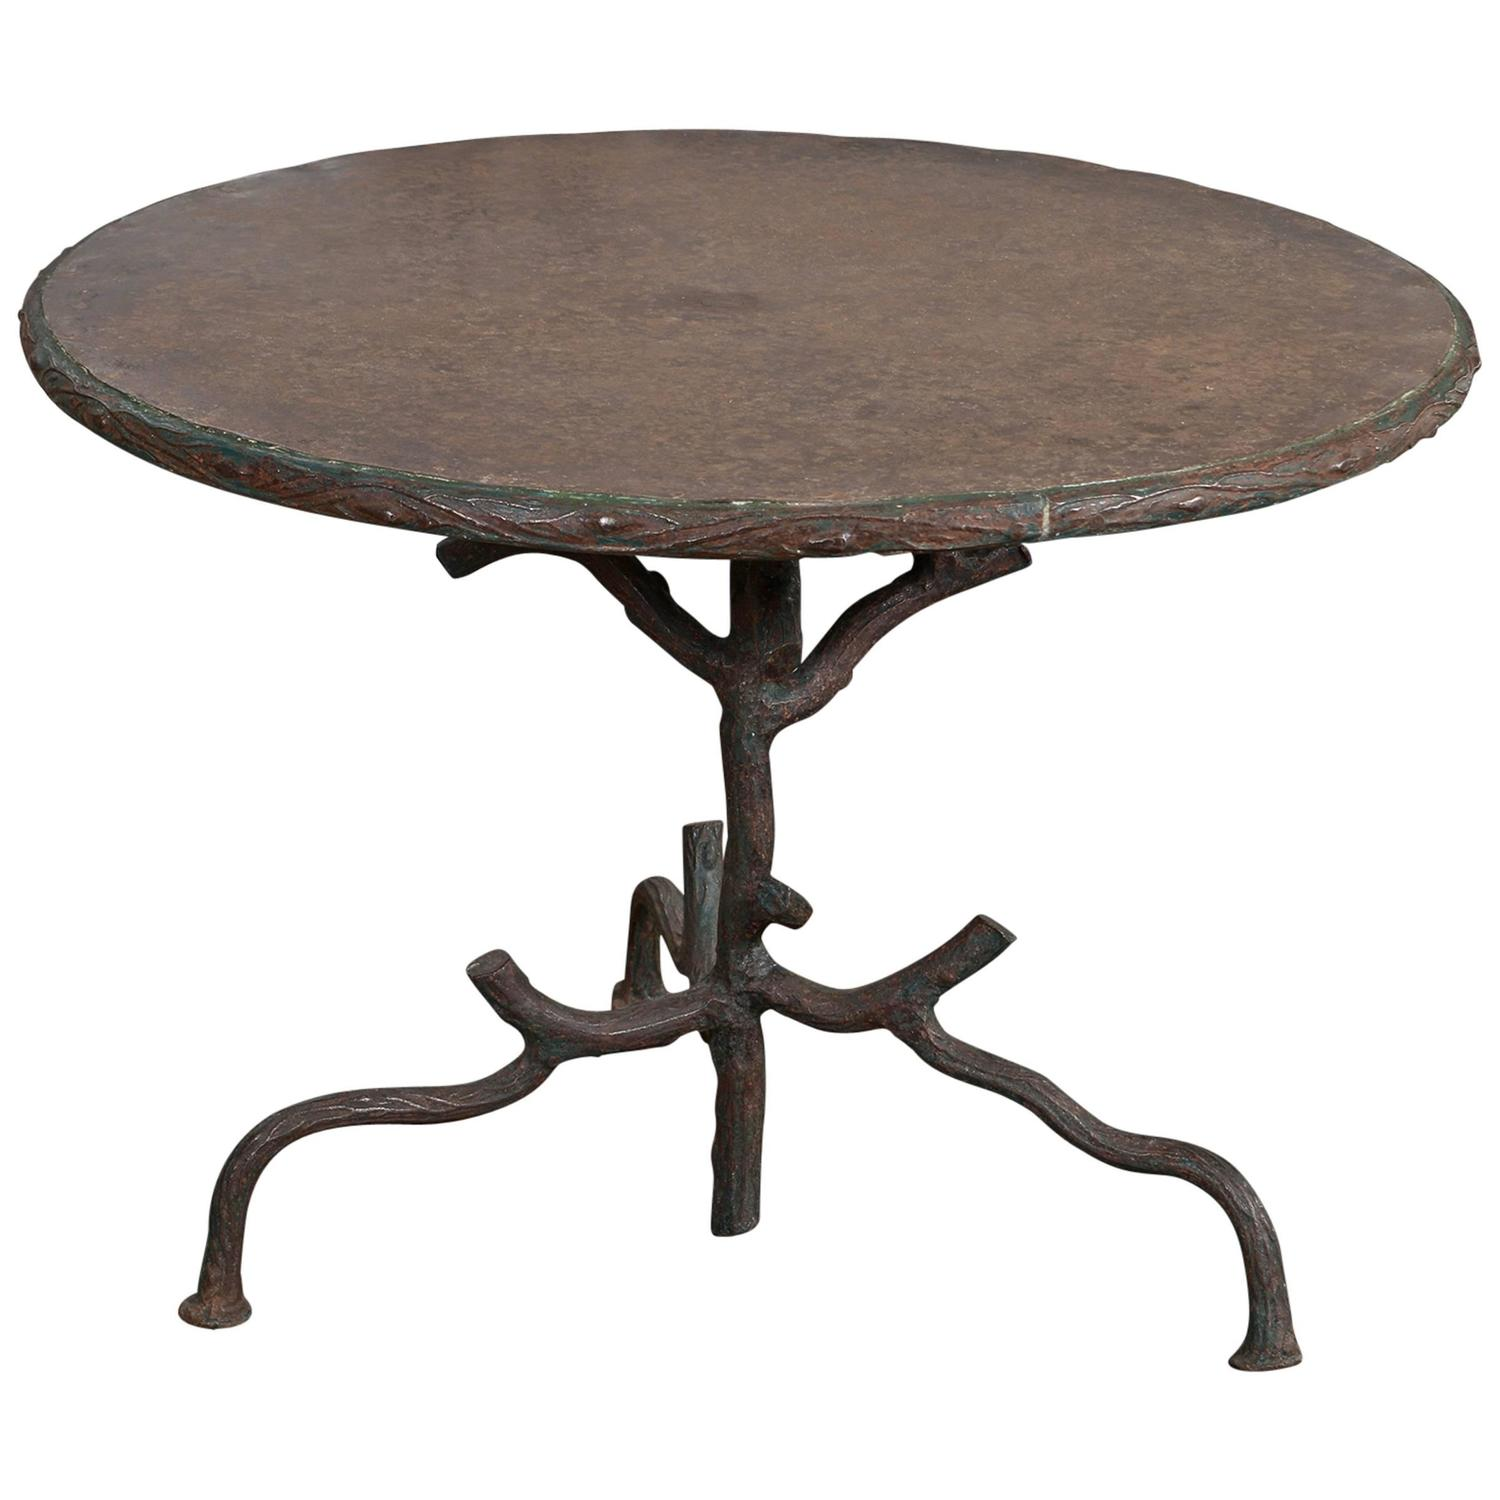 Faux bois iron table at 1stdibs Table jardin imitation bois